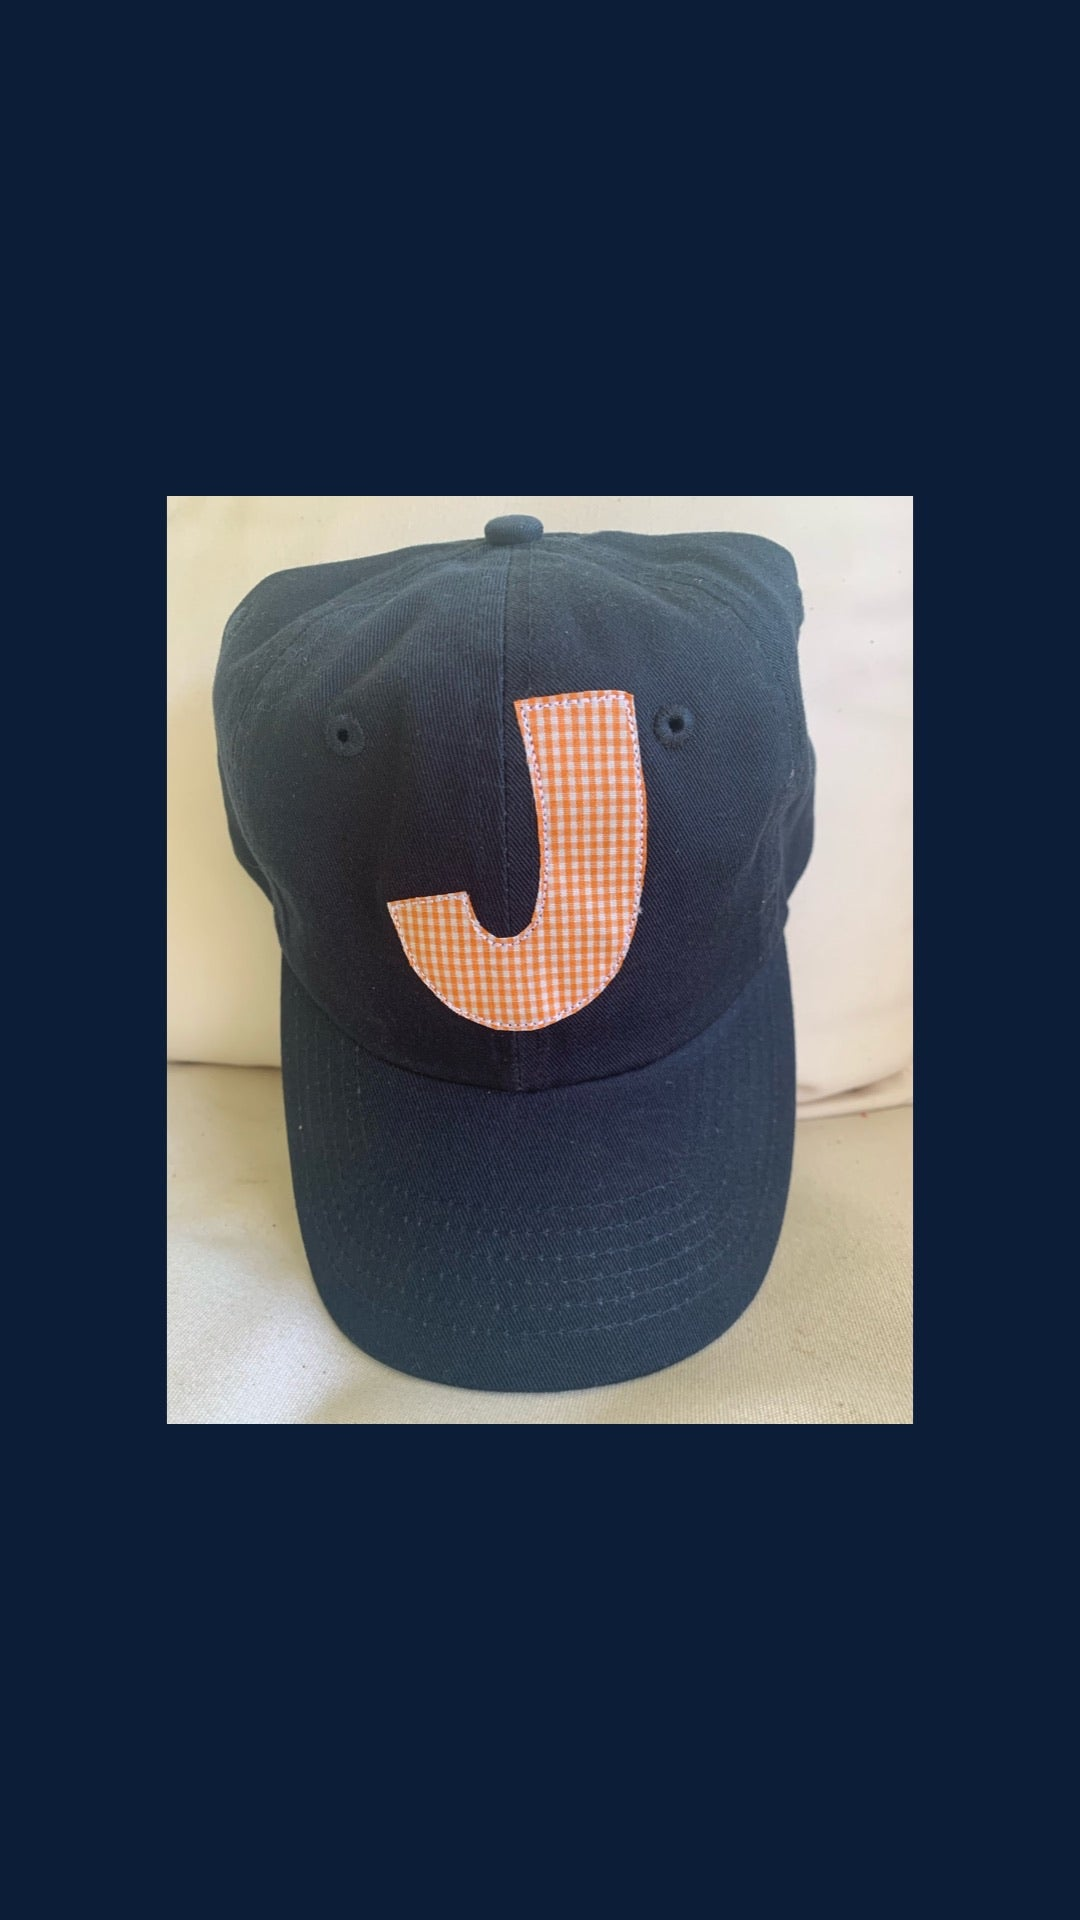 Navy and orange hat